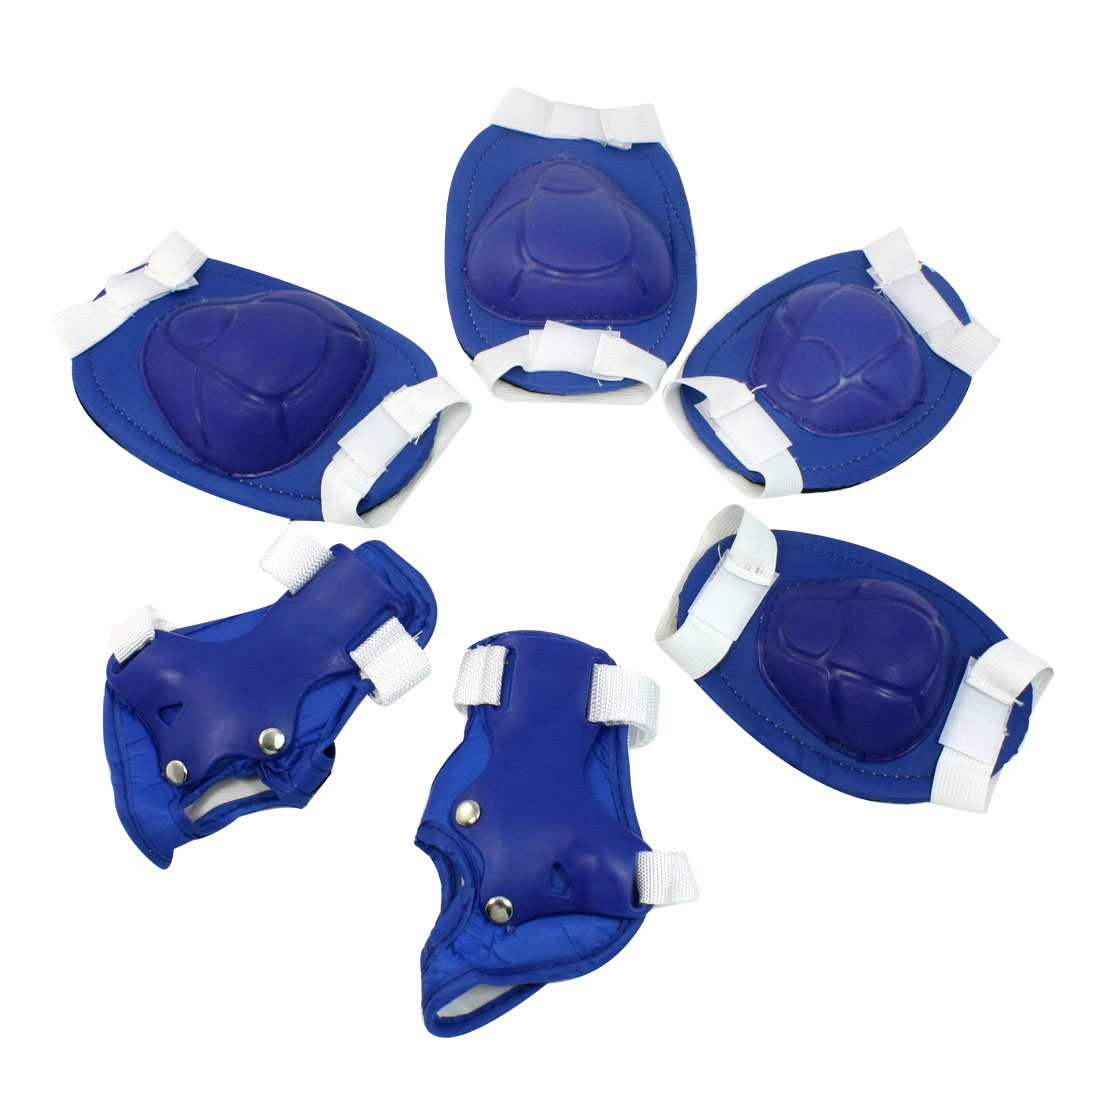 Kids Adjustable Design Skating Protector Knee Elbow Palm Support Set Blue White